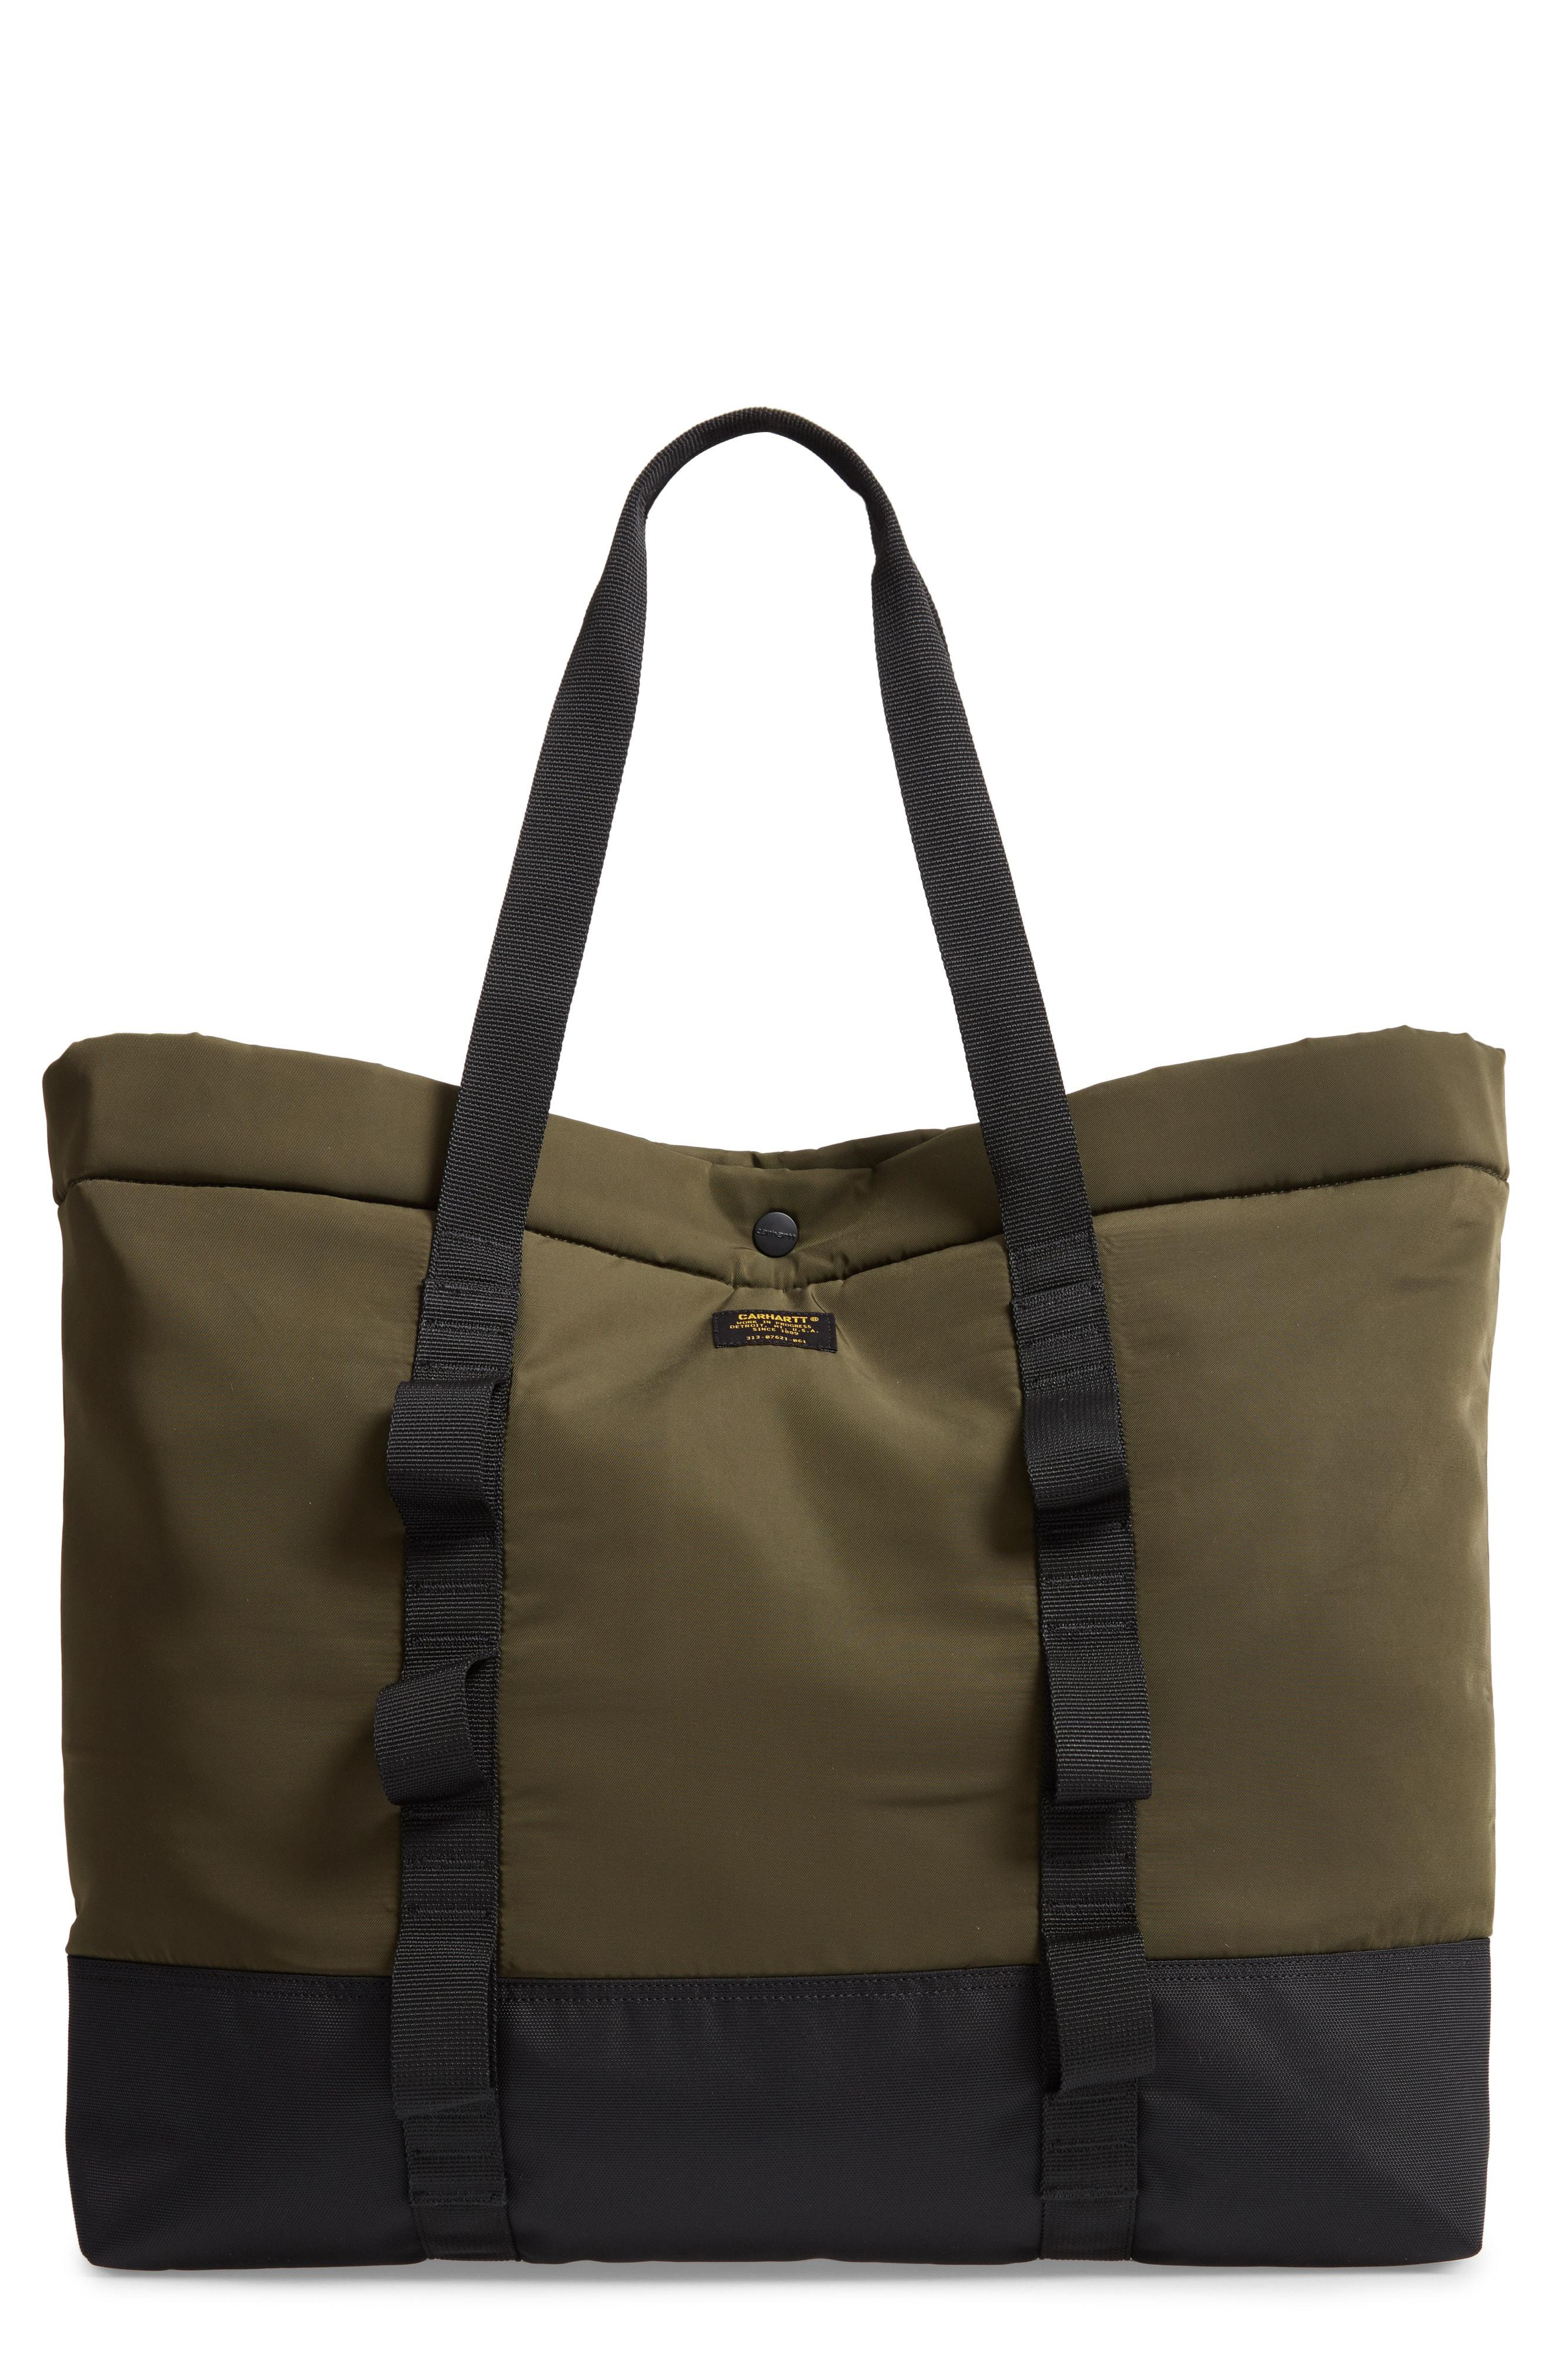 5cc63167b232 Lyst - Carhartt WIP Military Shopper Tote Bag in Green for Men